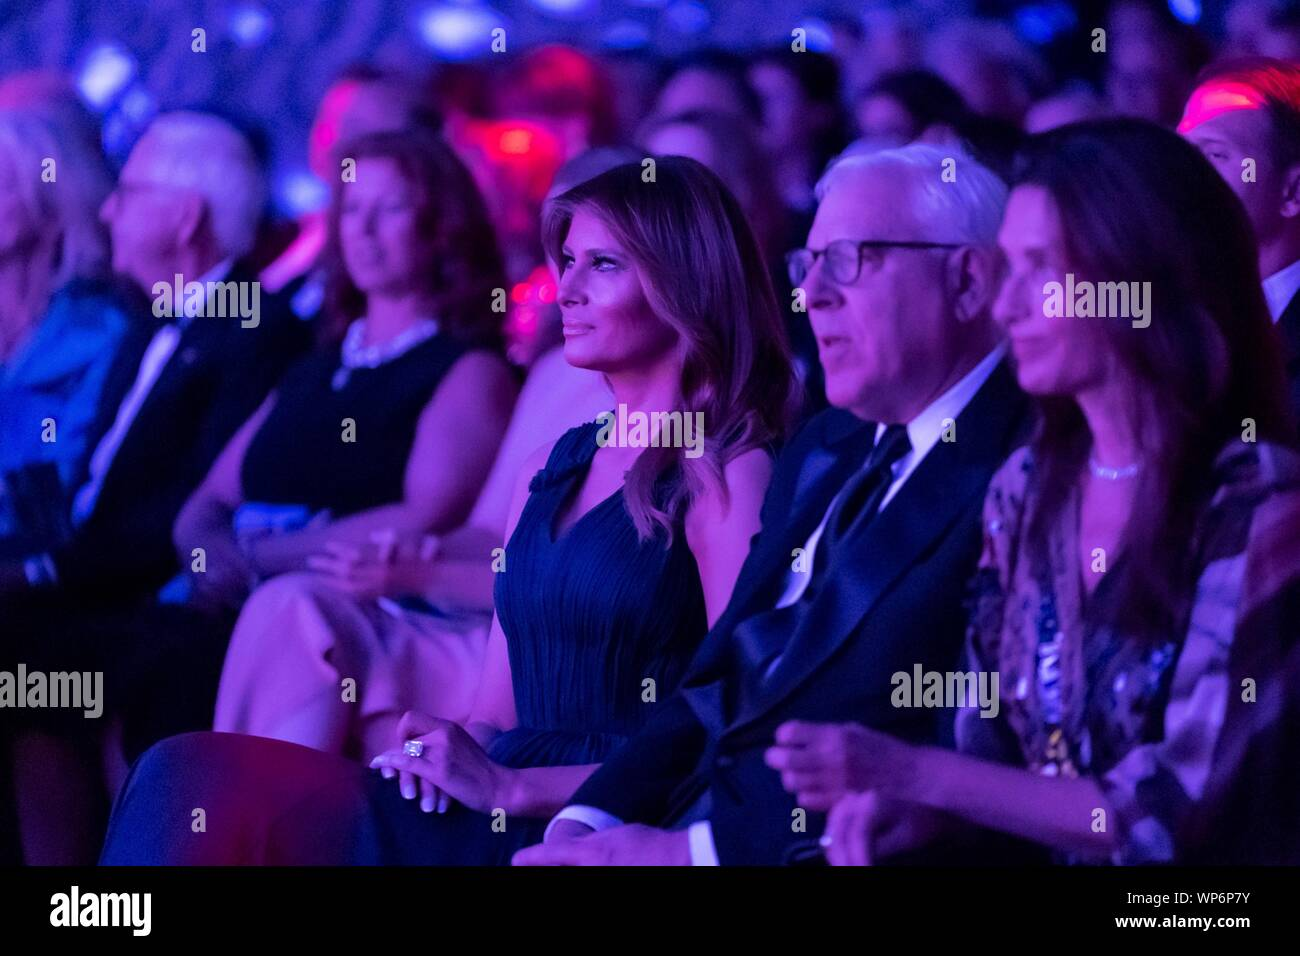 Washington, DC, USA. 05 September, 2019. U.S. First Lady Melania Trump applauds during the REACH performance at the John F. Kennedy Center for the Performing Arts September 5, 2019 in Washington, D.C. Sitting with the First Lady is David Rubenstein, right, co-founder of the Carlyle Group. Stock Photo